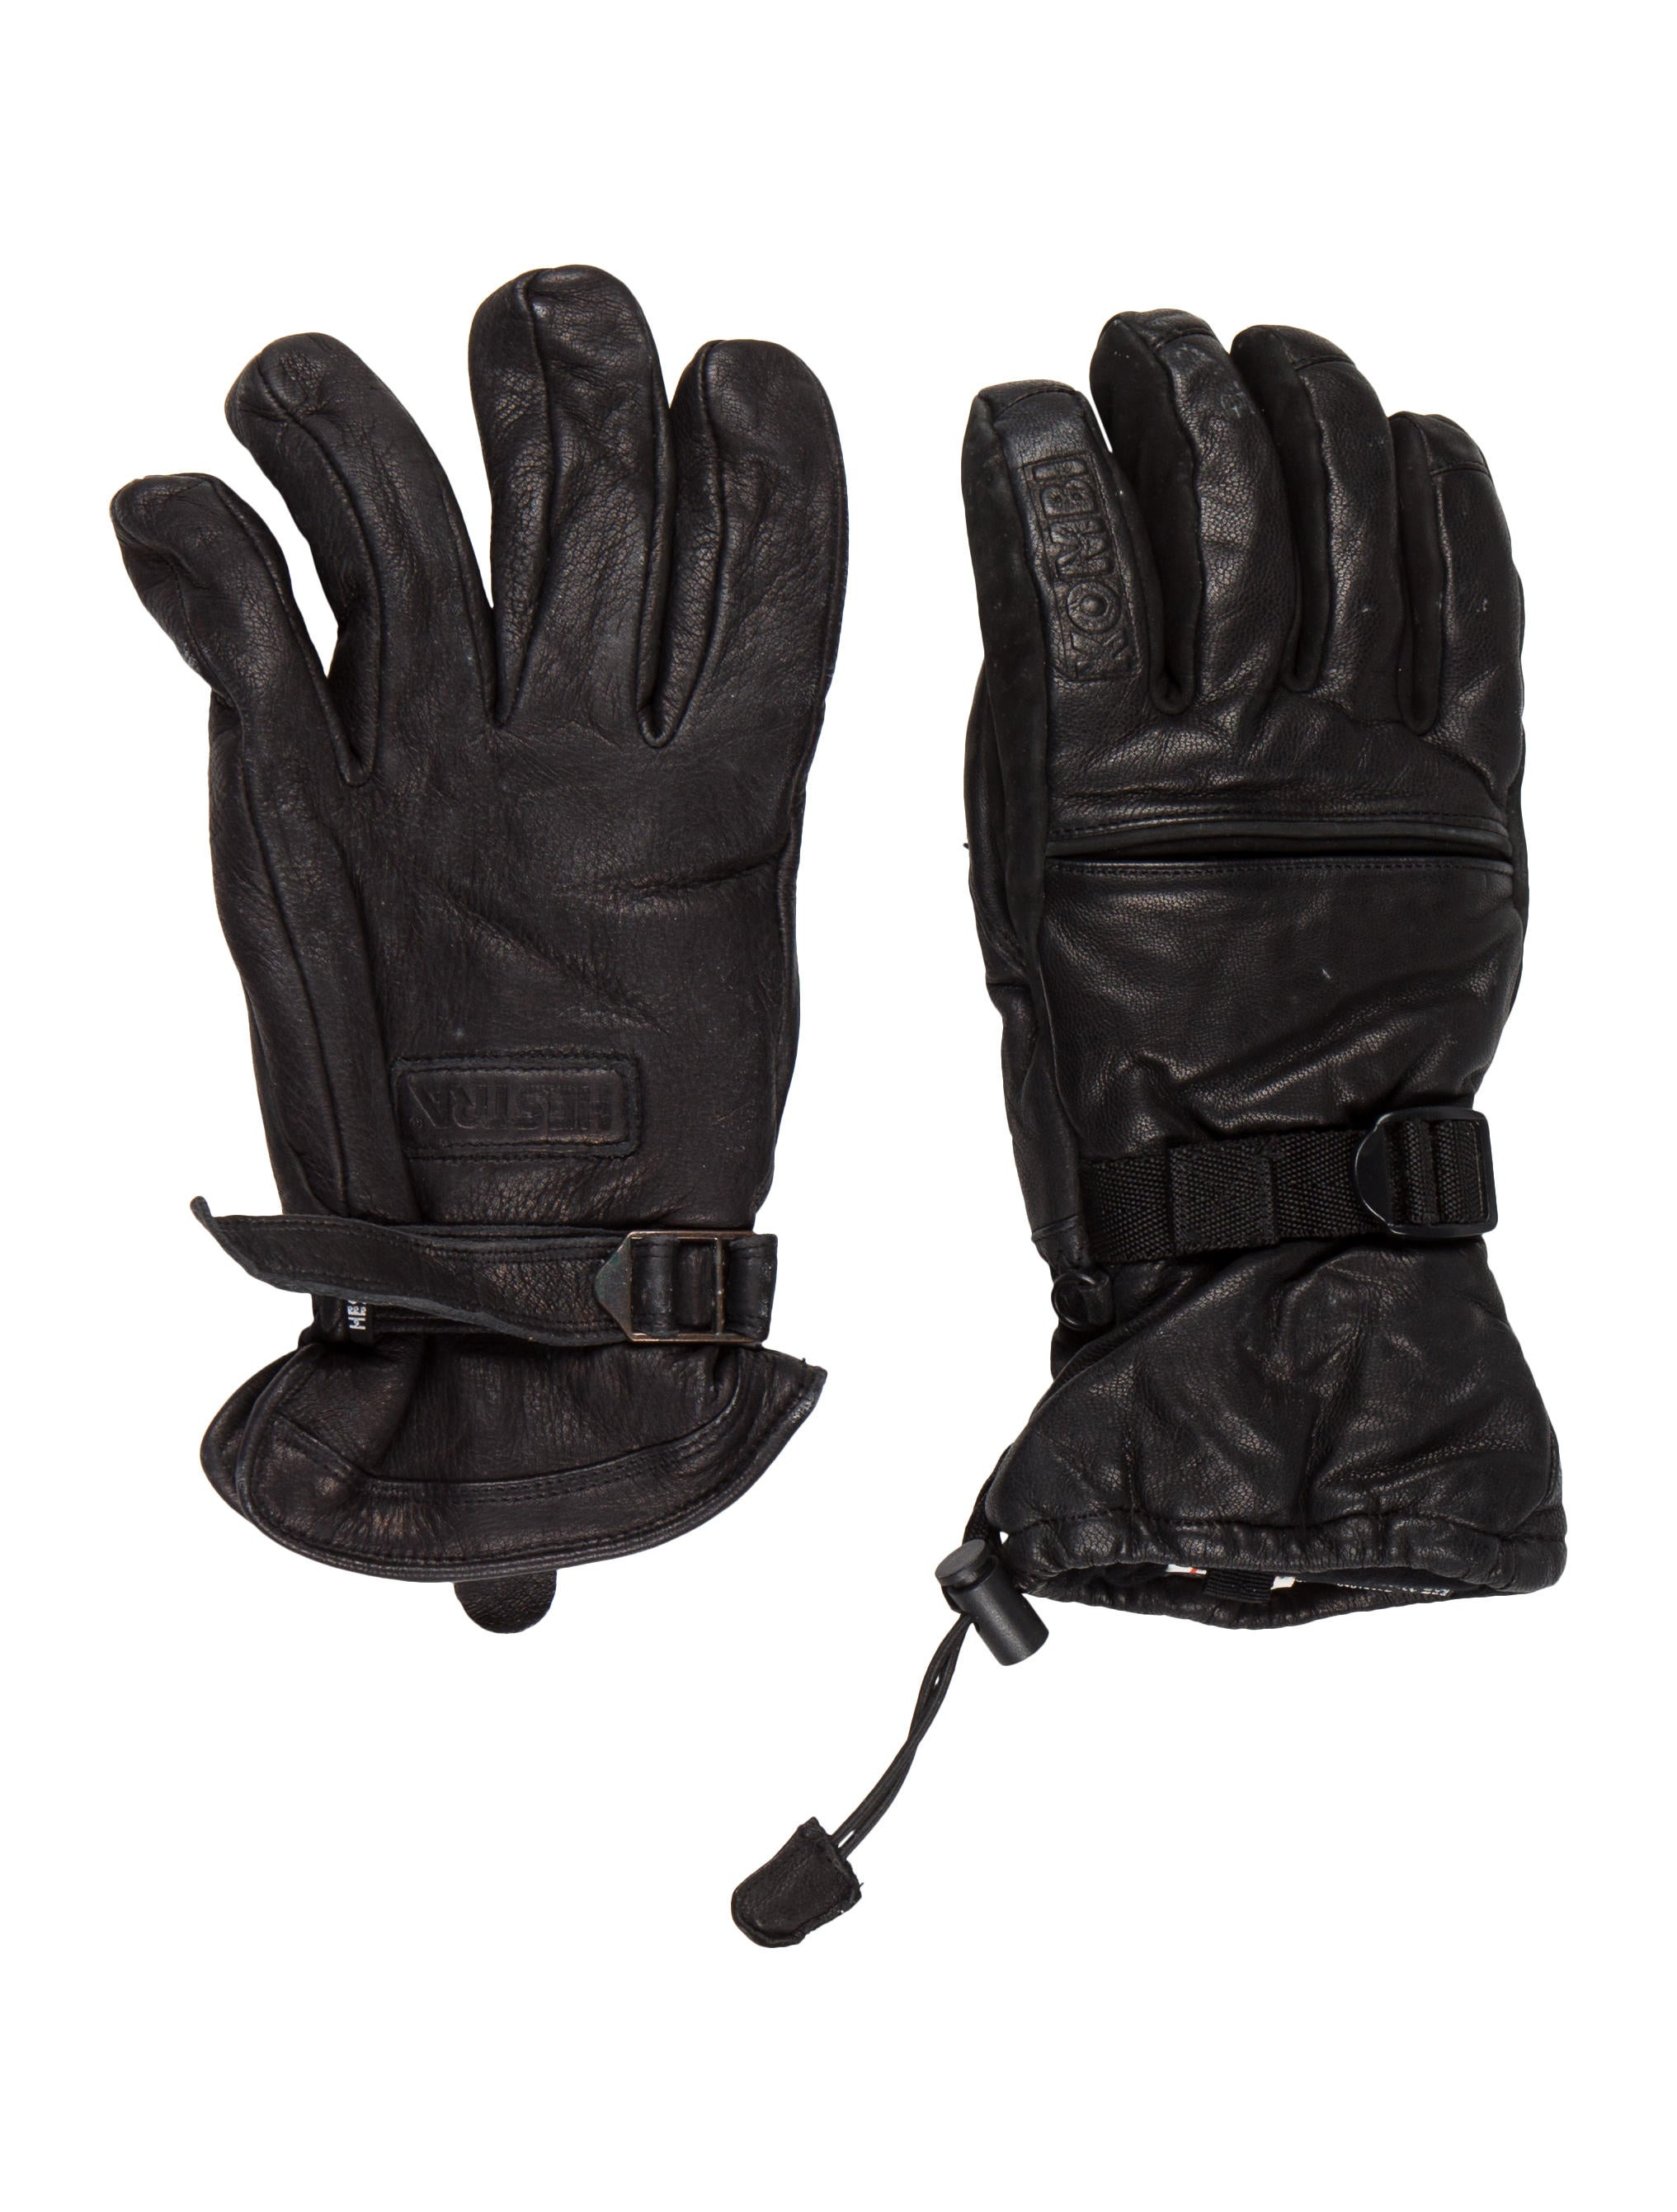 93d0418dc3eab Hestra Leather Gloves - Accessories - WHHAA20005   The RealReal